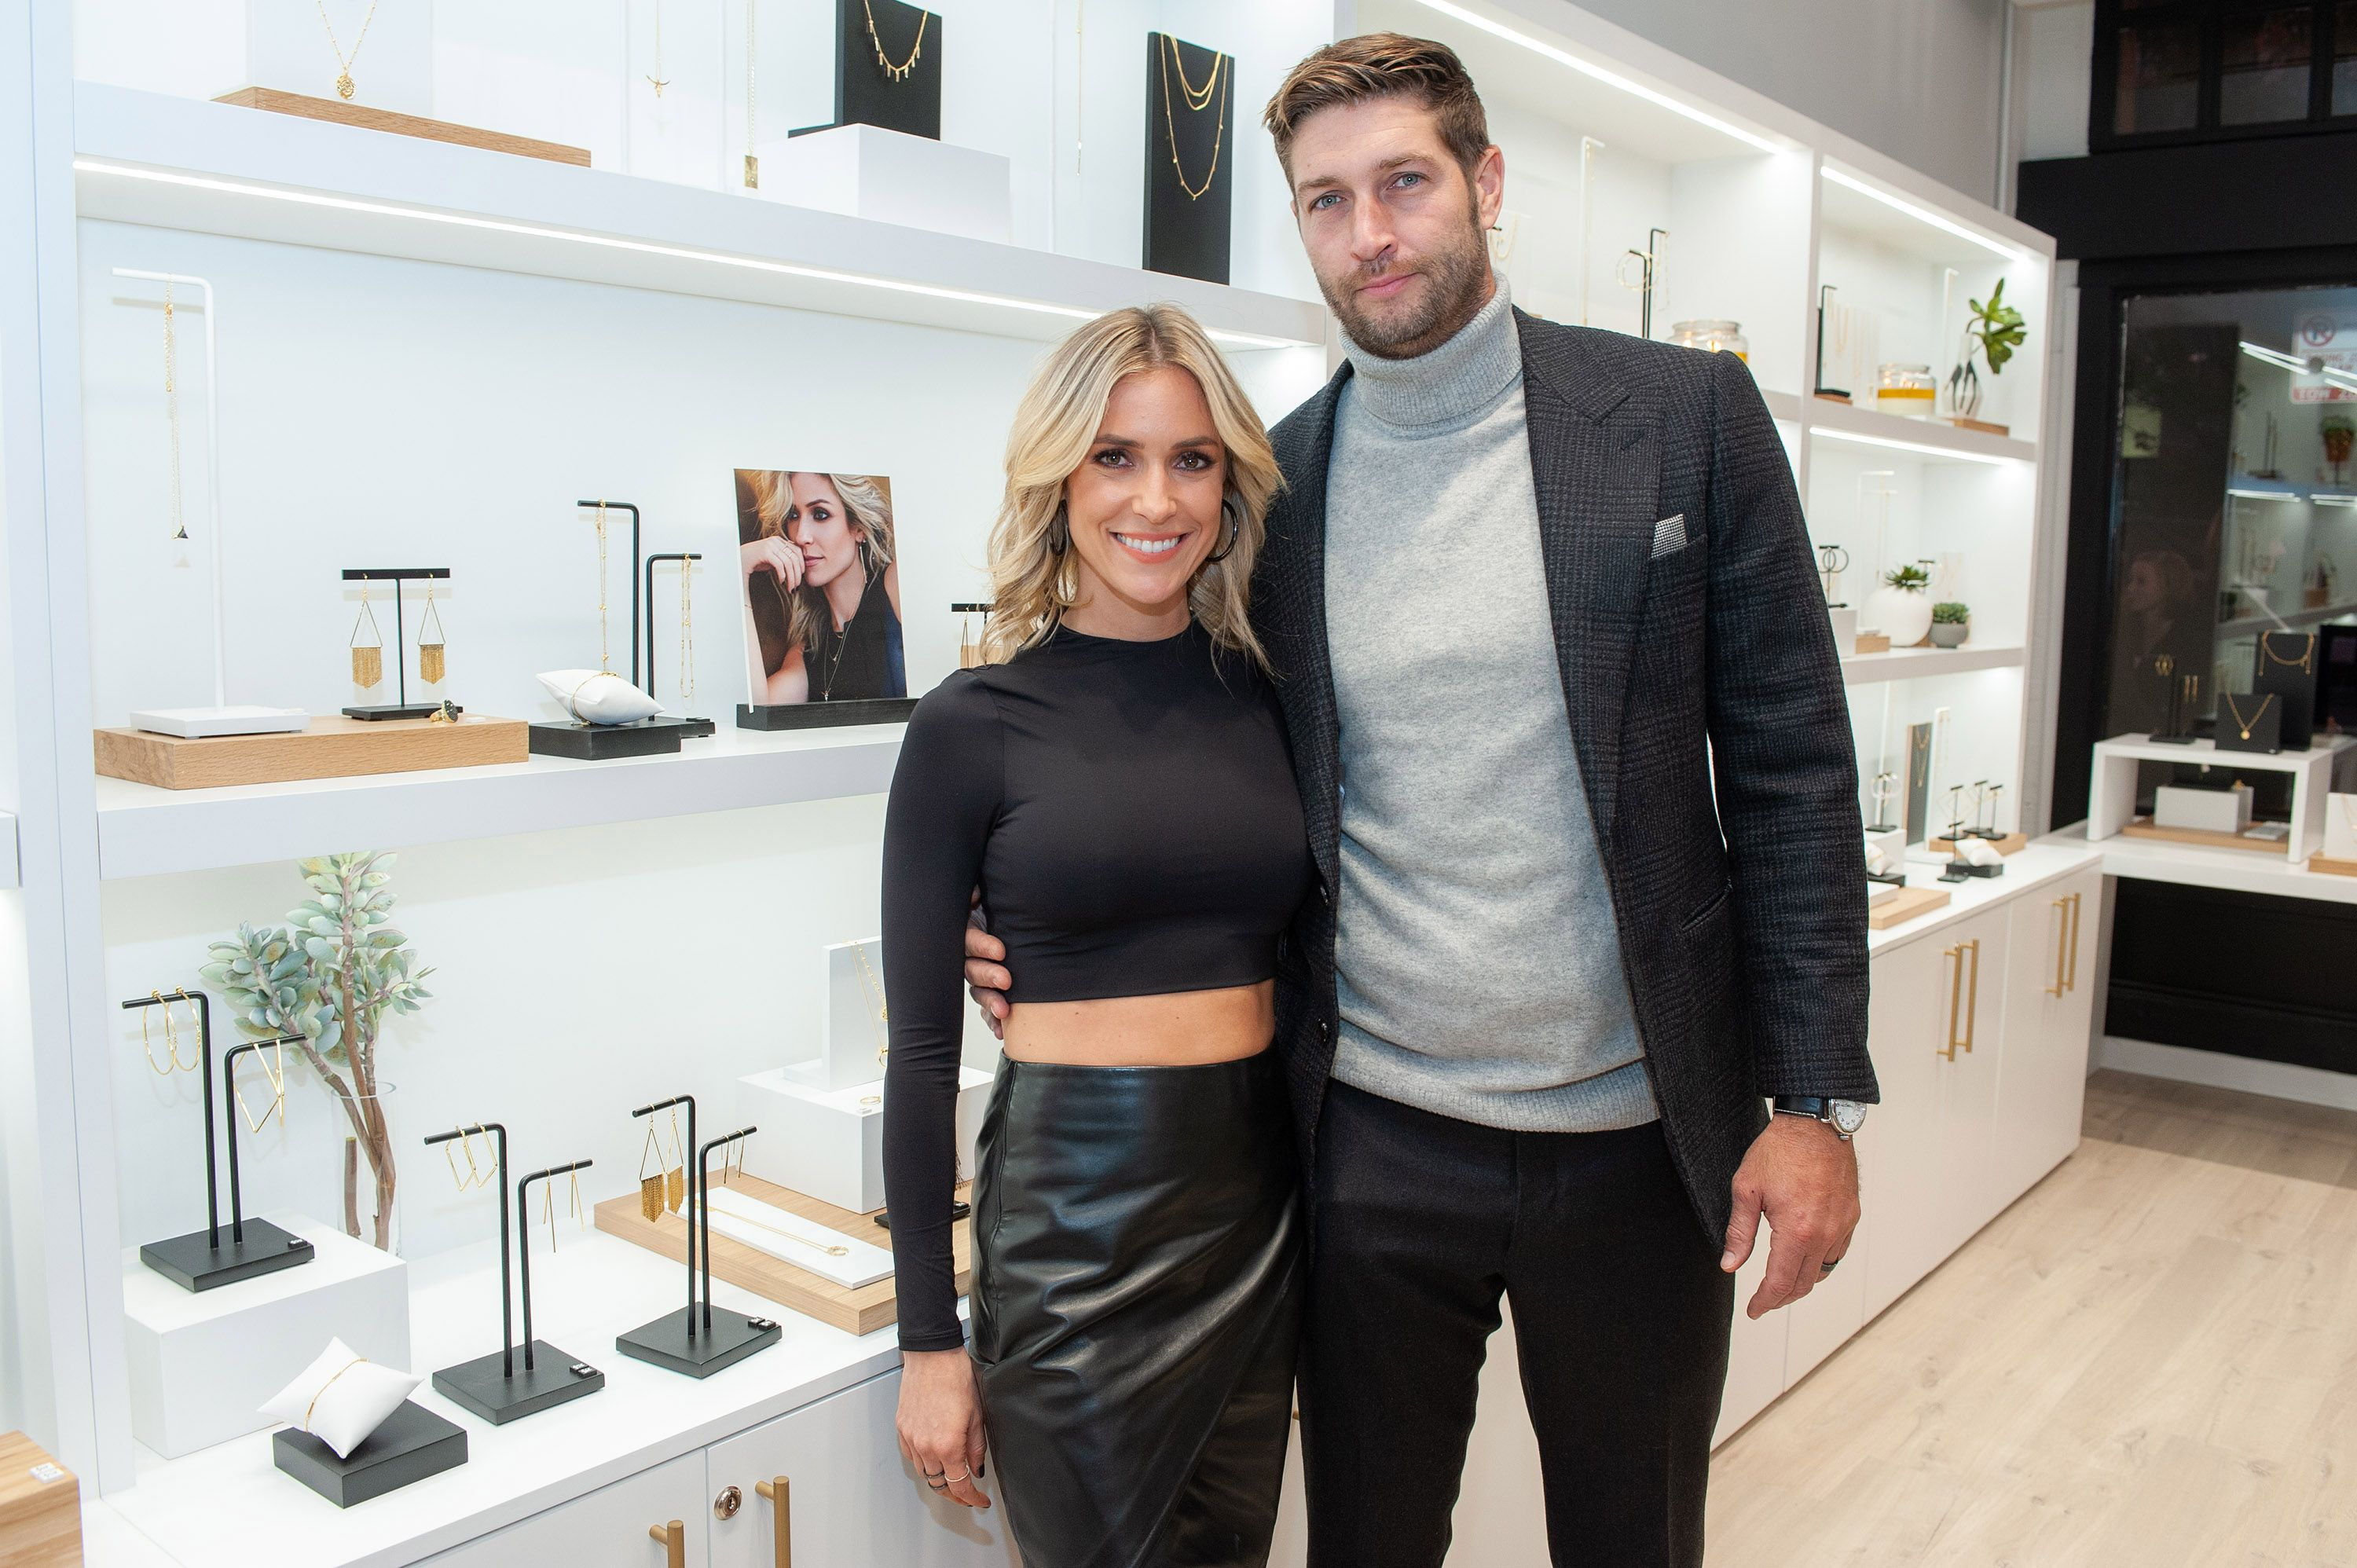 Kristin Cavallari and Jay Cutler attend the Uncommon James VIP Grand Opening at Uncommon James on October 25, 2019 in Chicago, Illinois. | Source: Getty Images